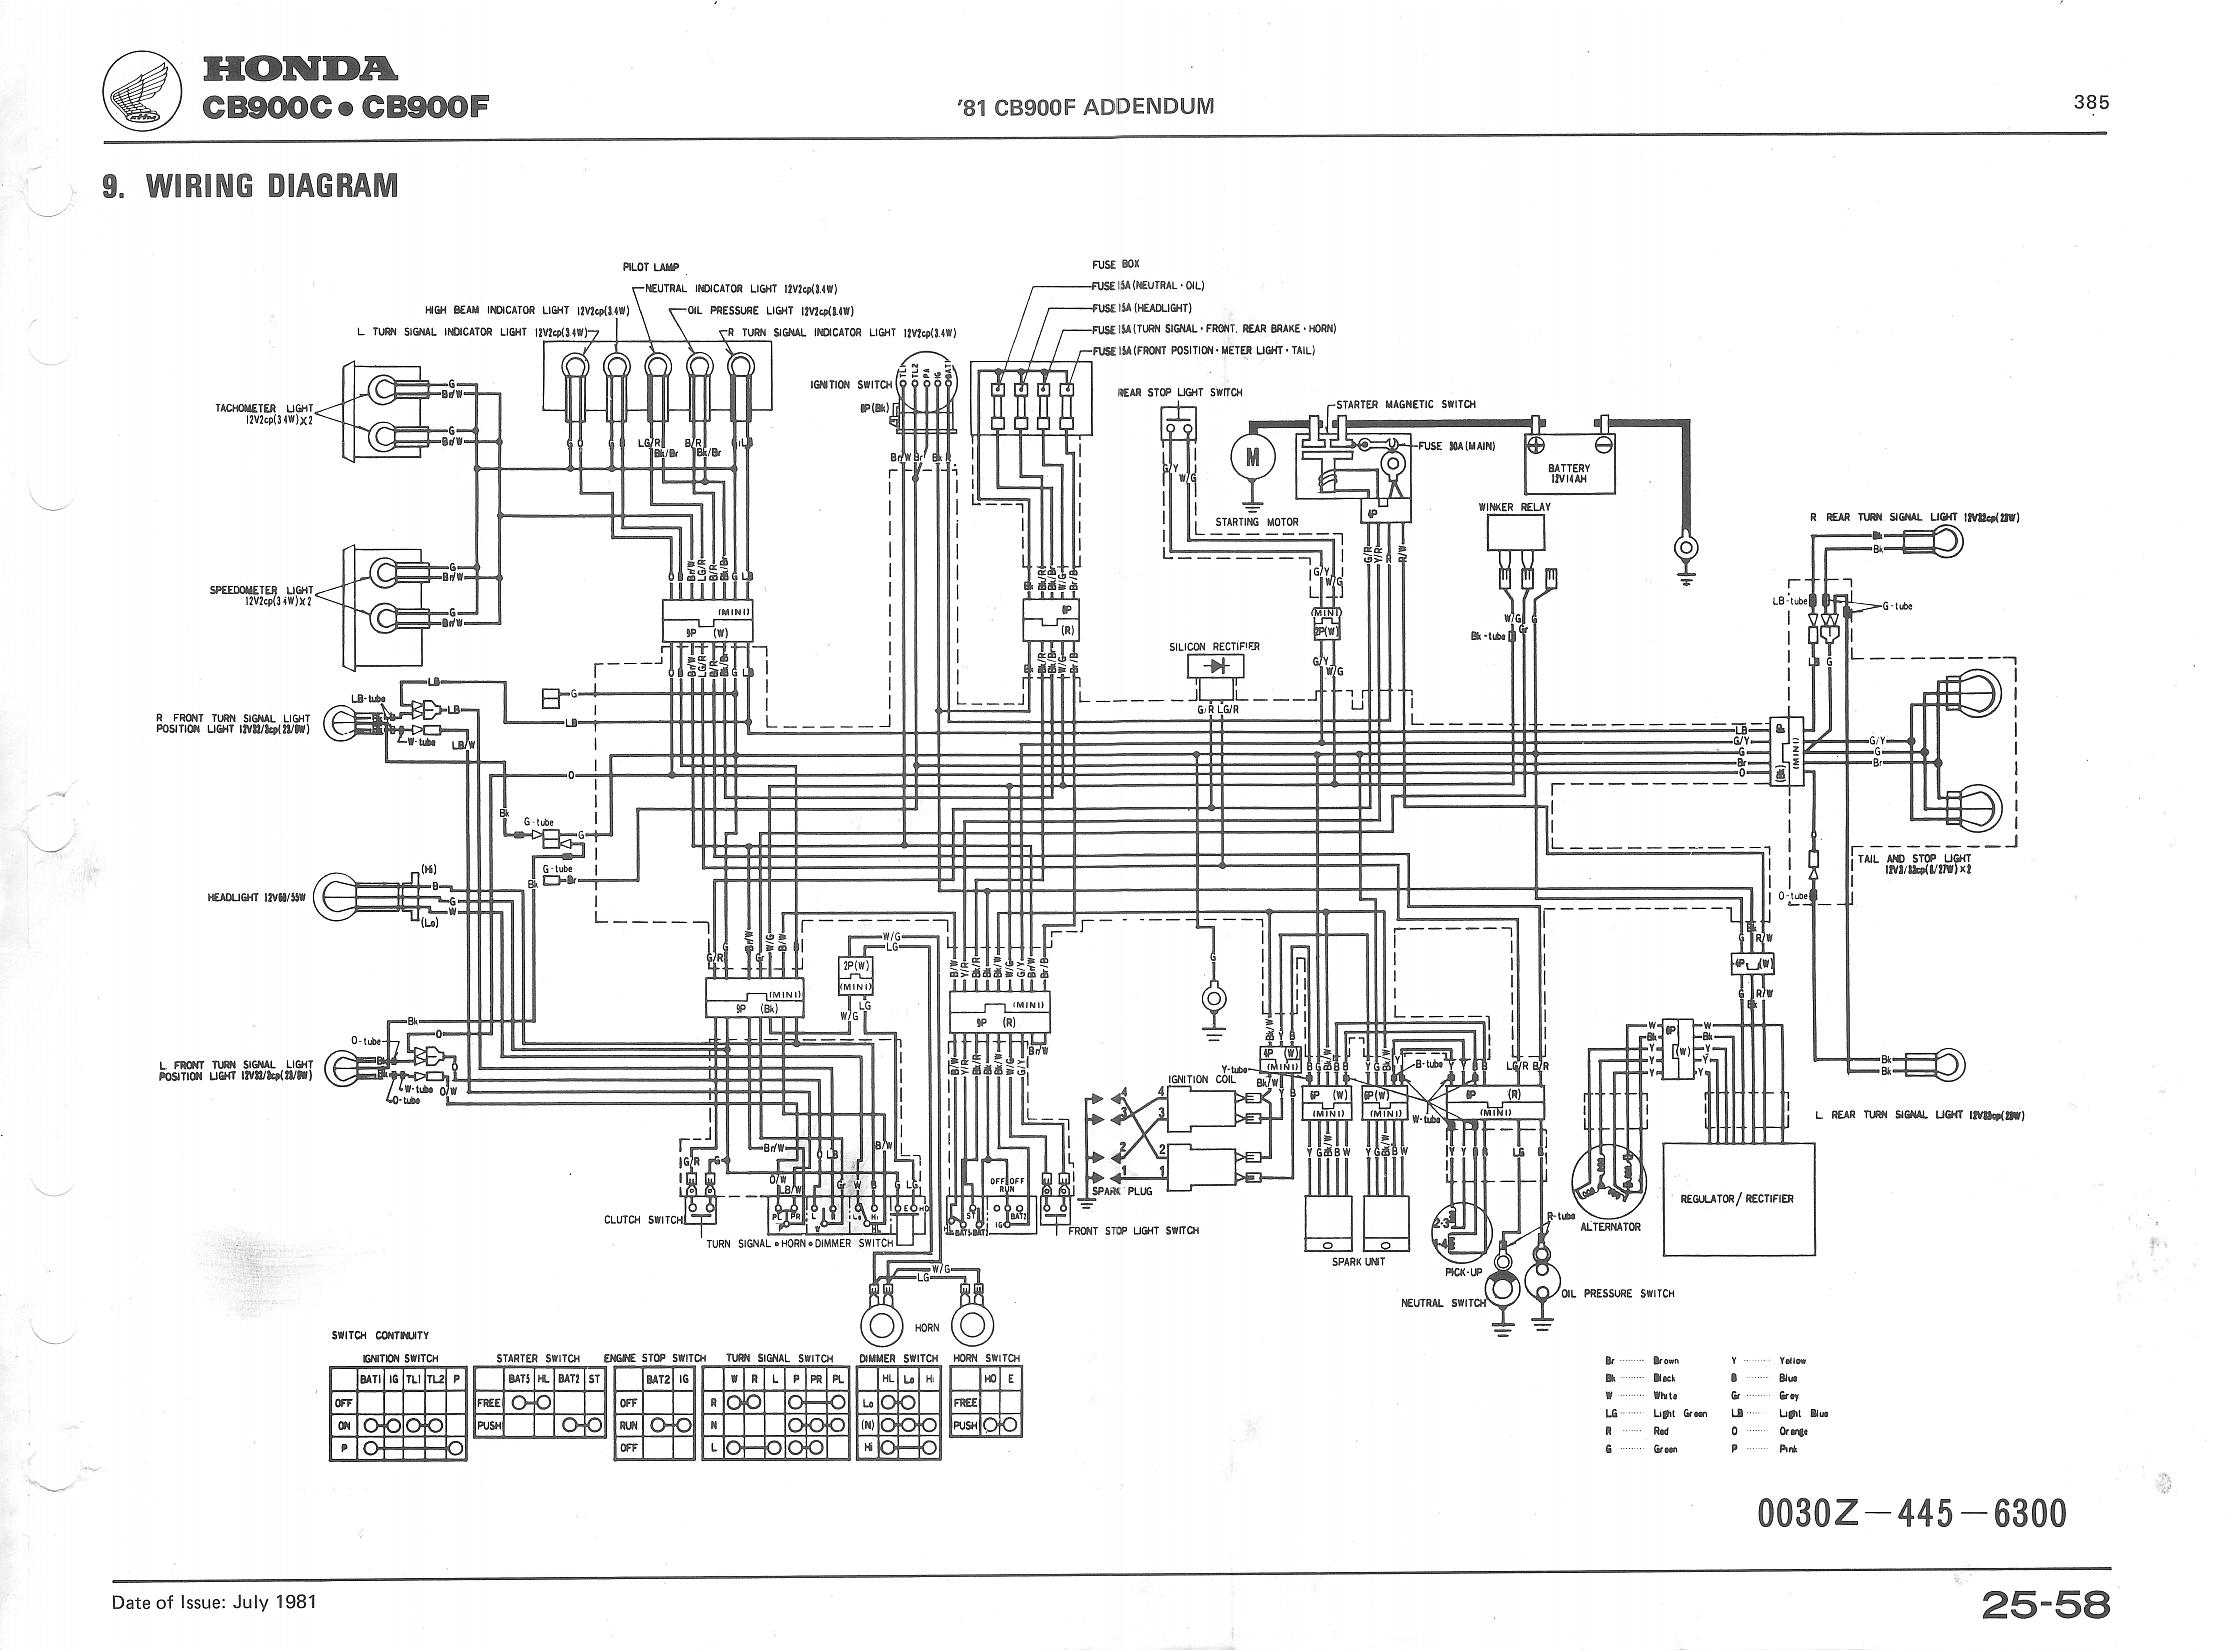 1980 Gl1100 Wiring Diagram Detailed Schematics Goldwing Honda Standard Gl1500